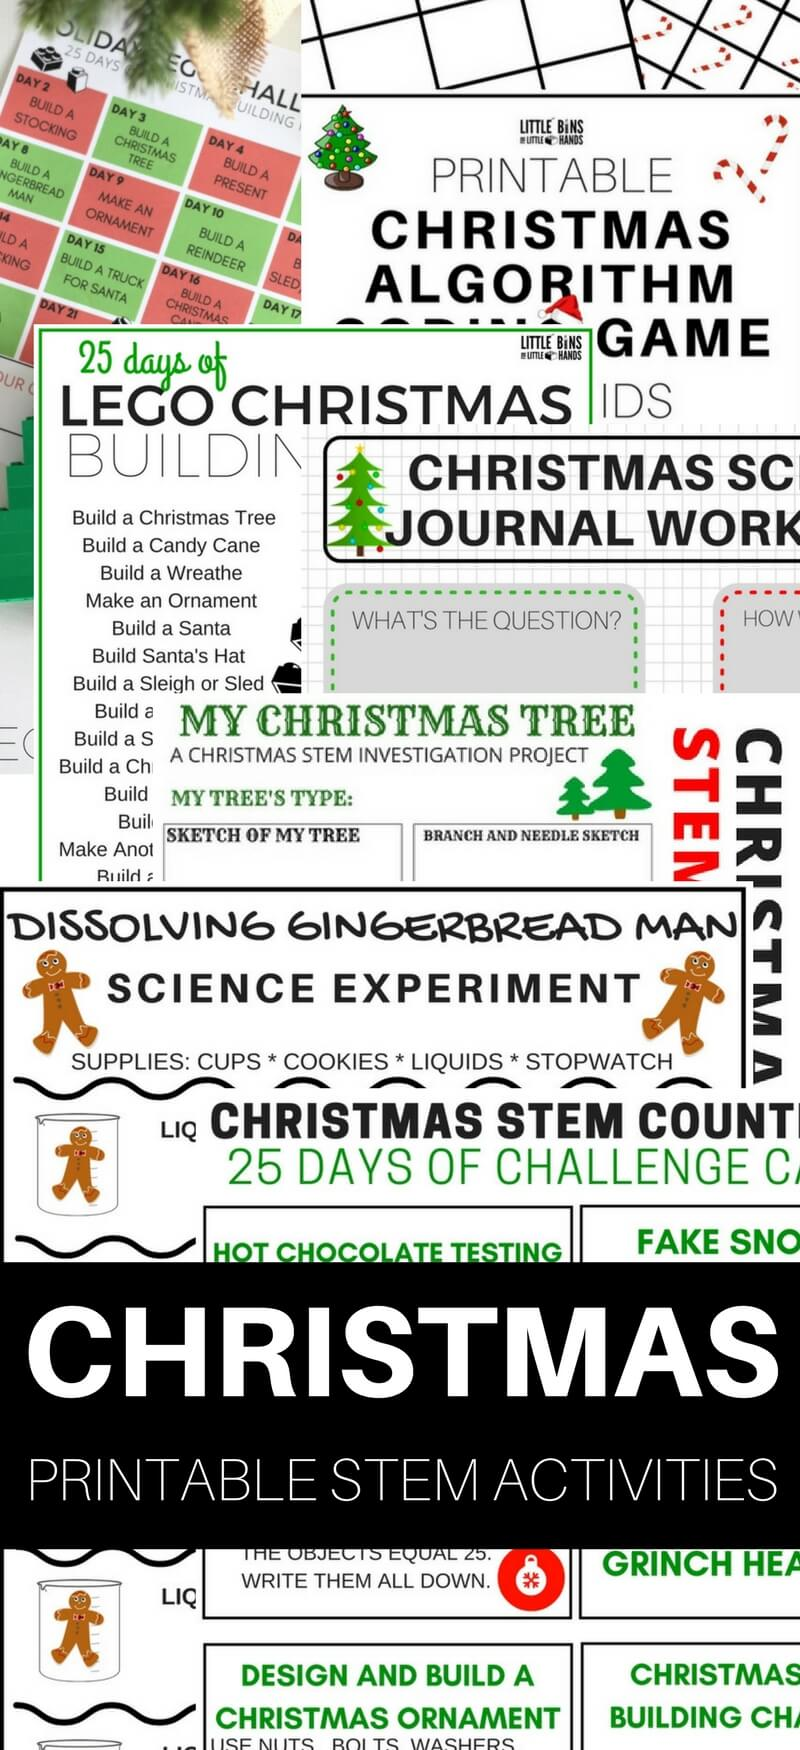 If you want to add a little holly and jolly to your lesson plans this holiday season, check out our totally free printable Christmas STEM activities. Kids love when you add holiday and seasonal themes to classic science and STEM. We have some fun Christmas theme STEM activities for candy canes, gingerbread men, Christmas trees, jingle bells, and more! of course we always include some great homemade slime recipes.